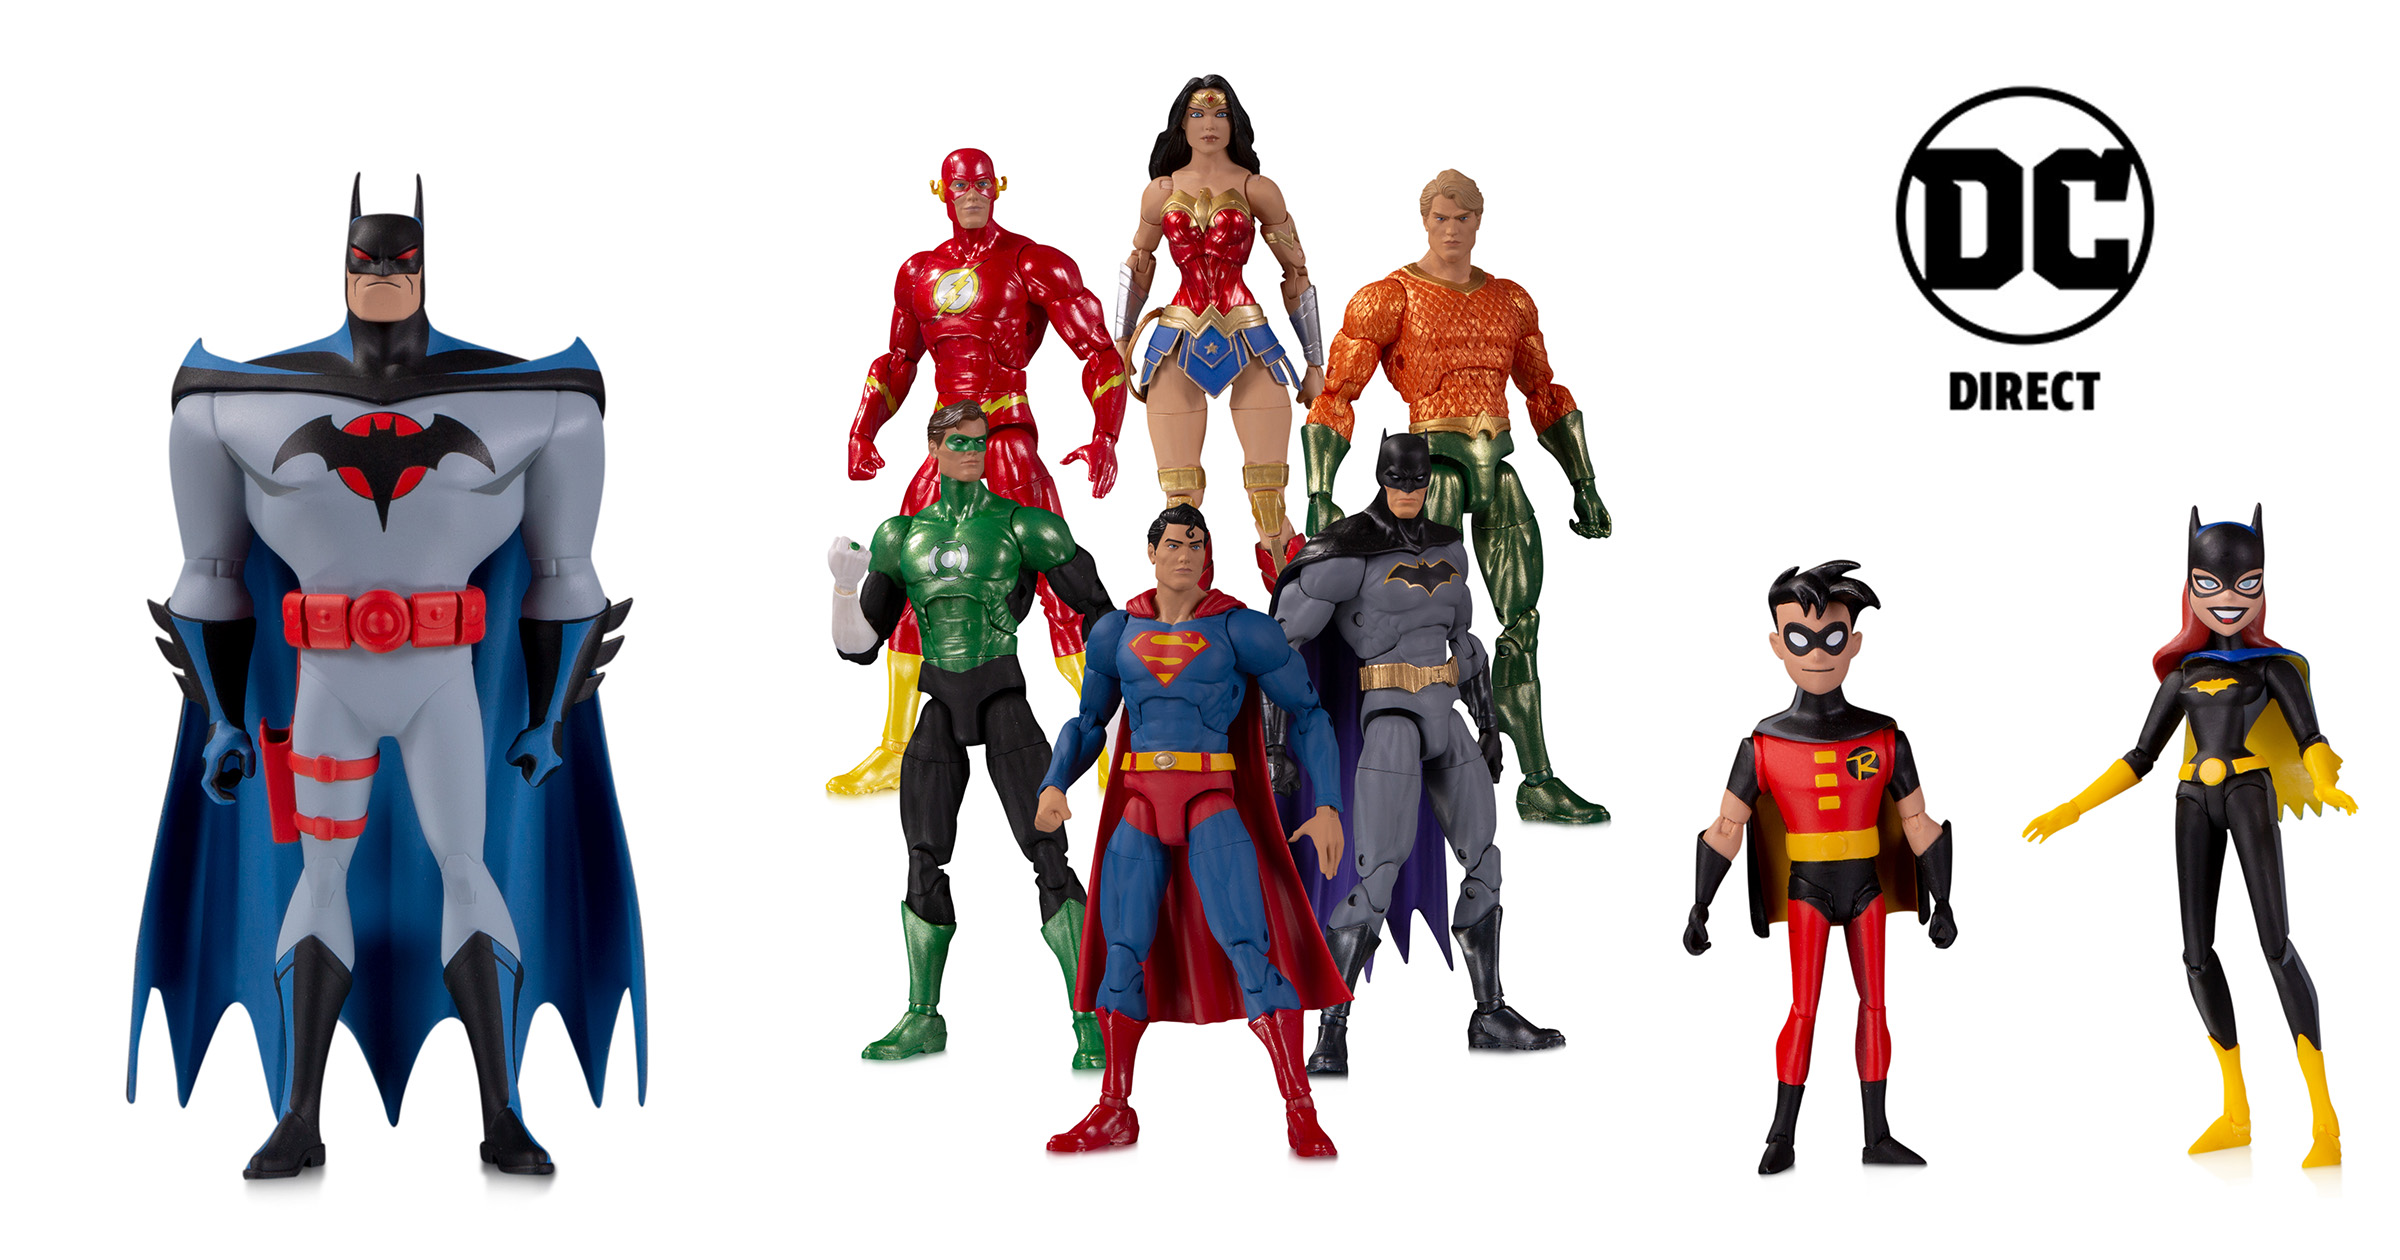 zz DC Direct Toy Fair 2020